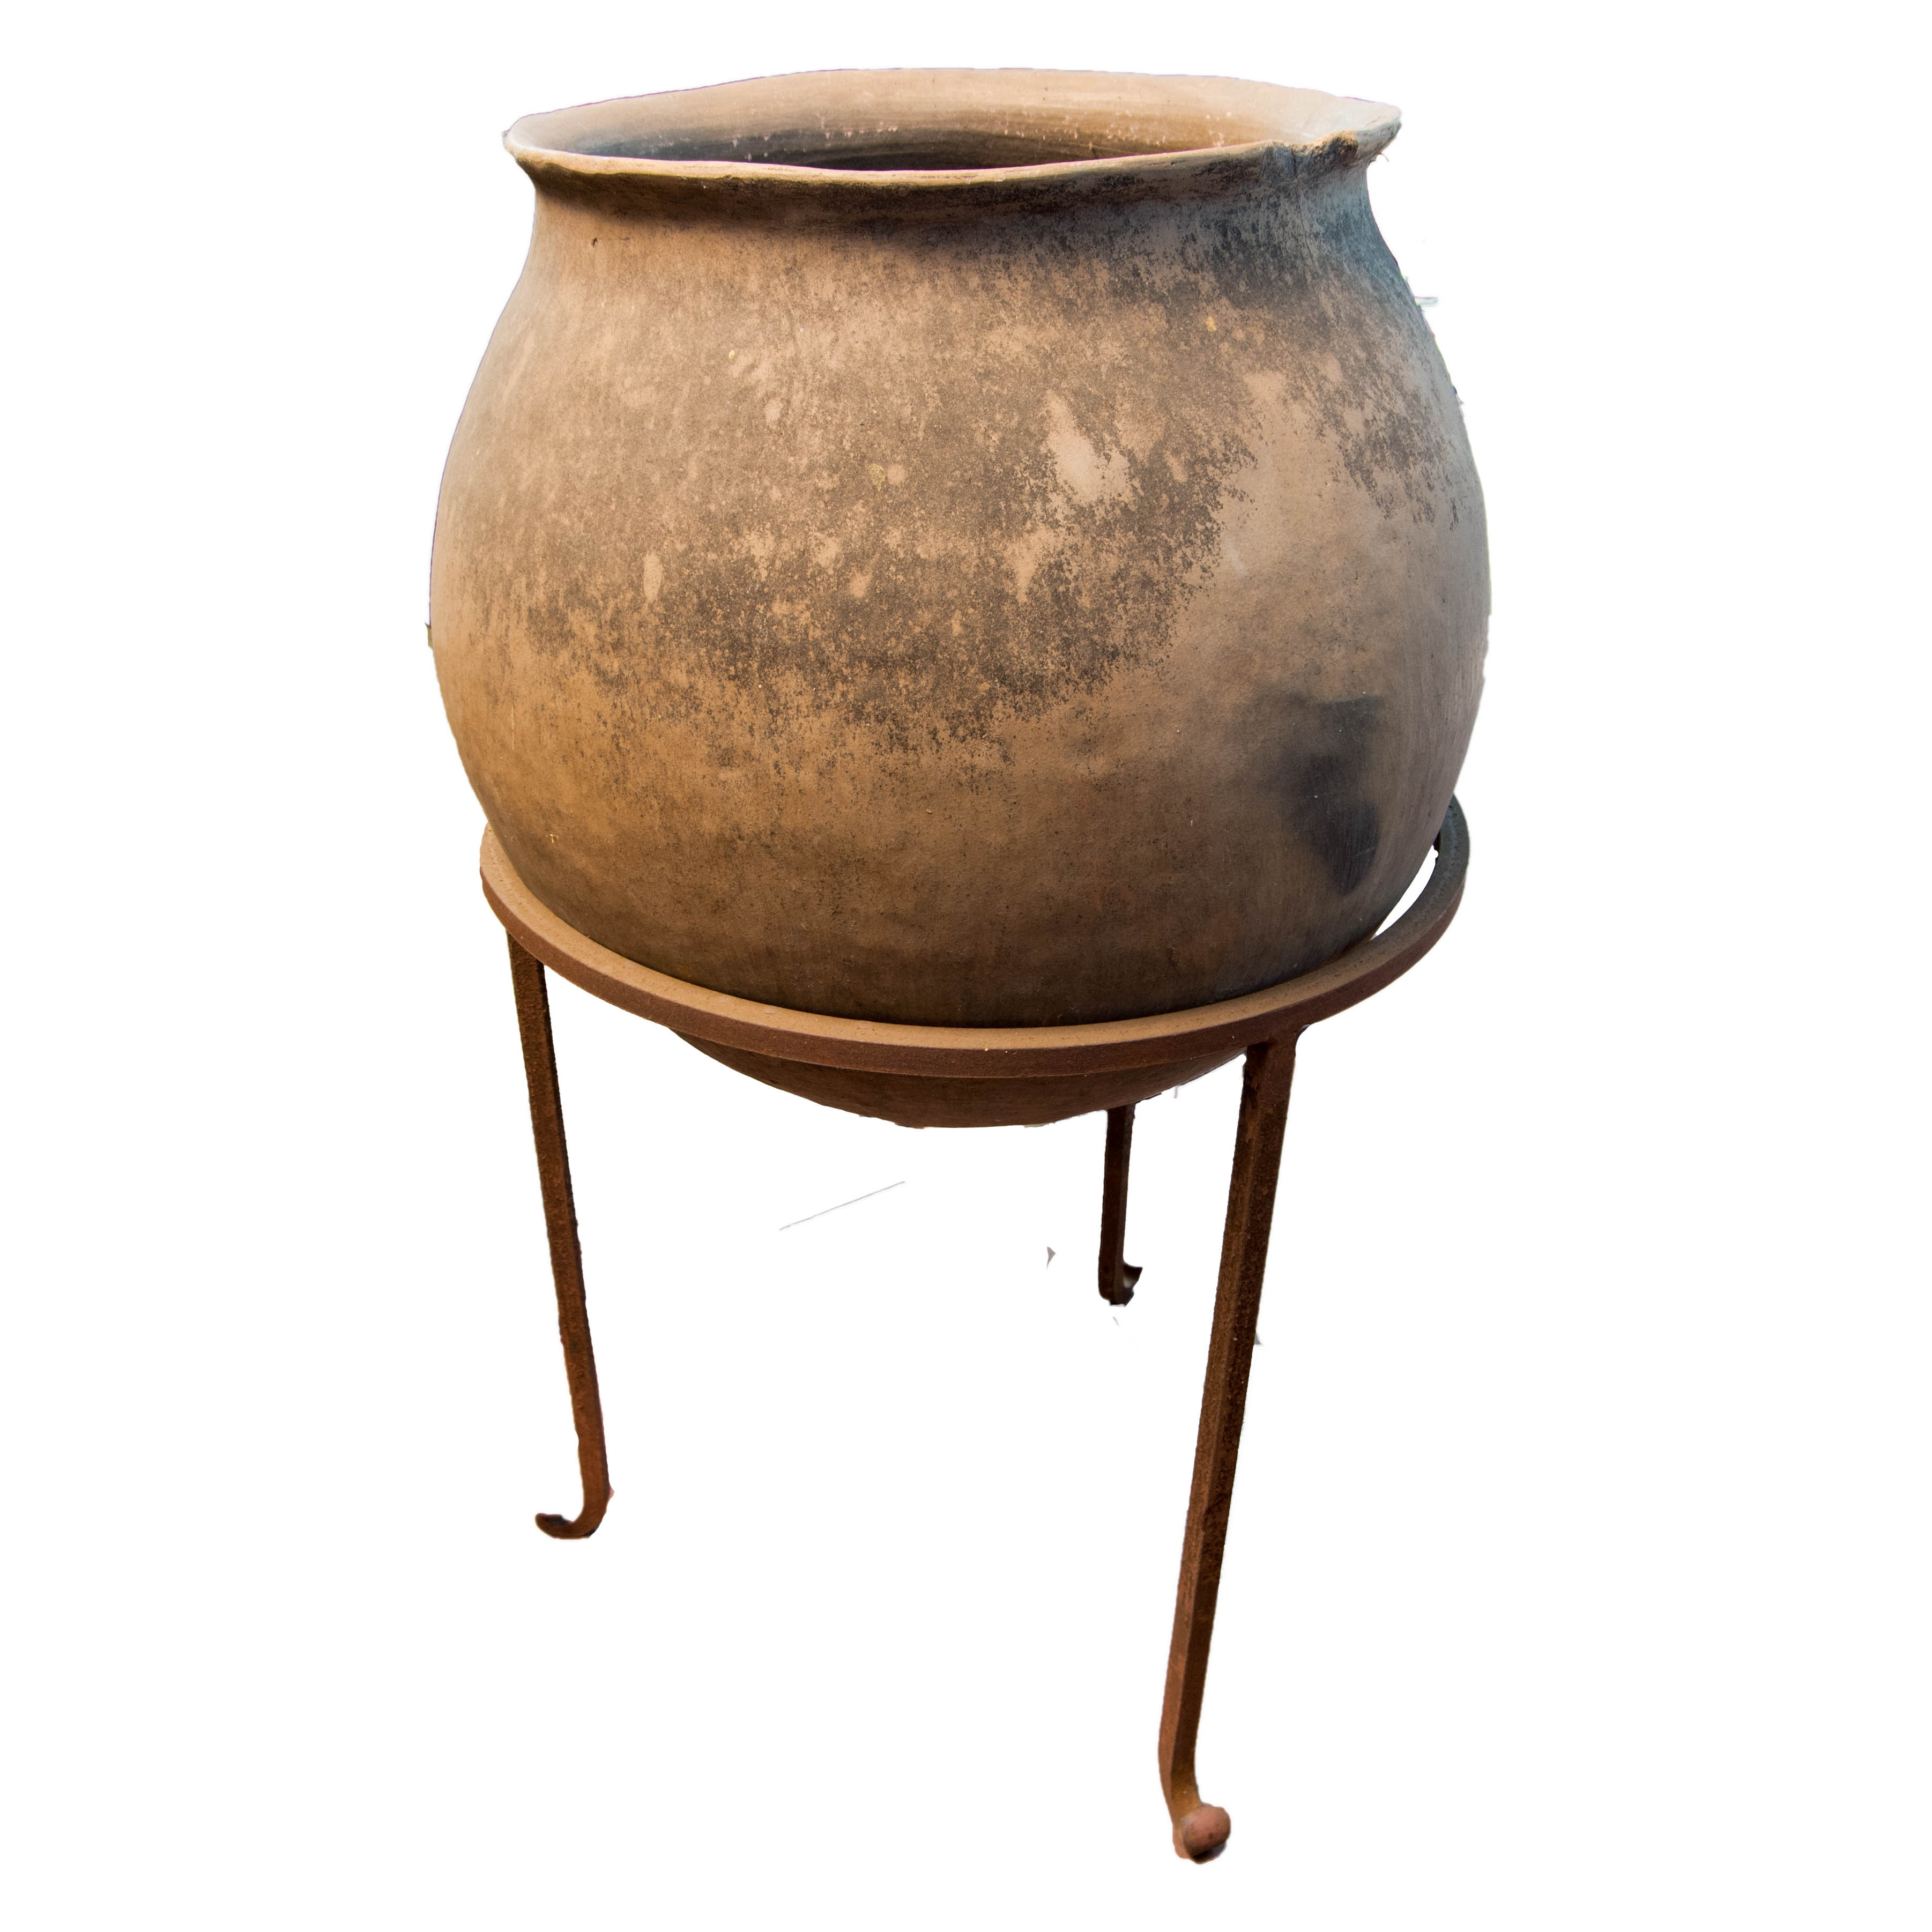 Ceramic Pot with Metal Stand